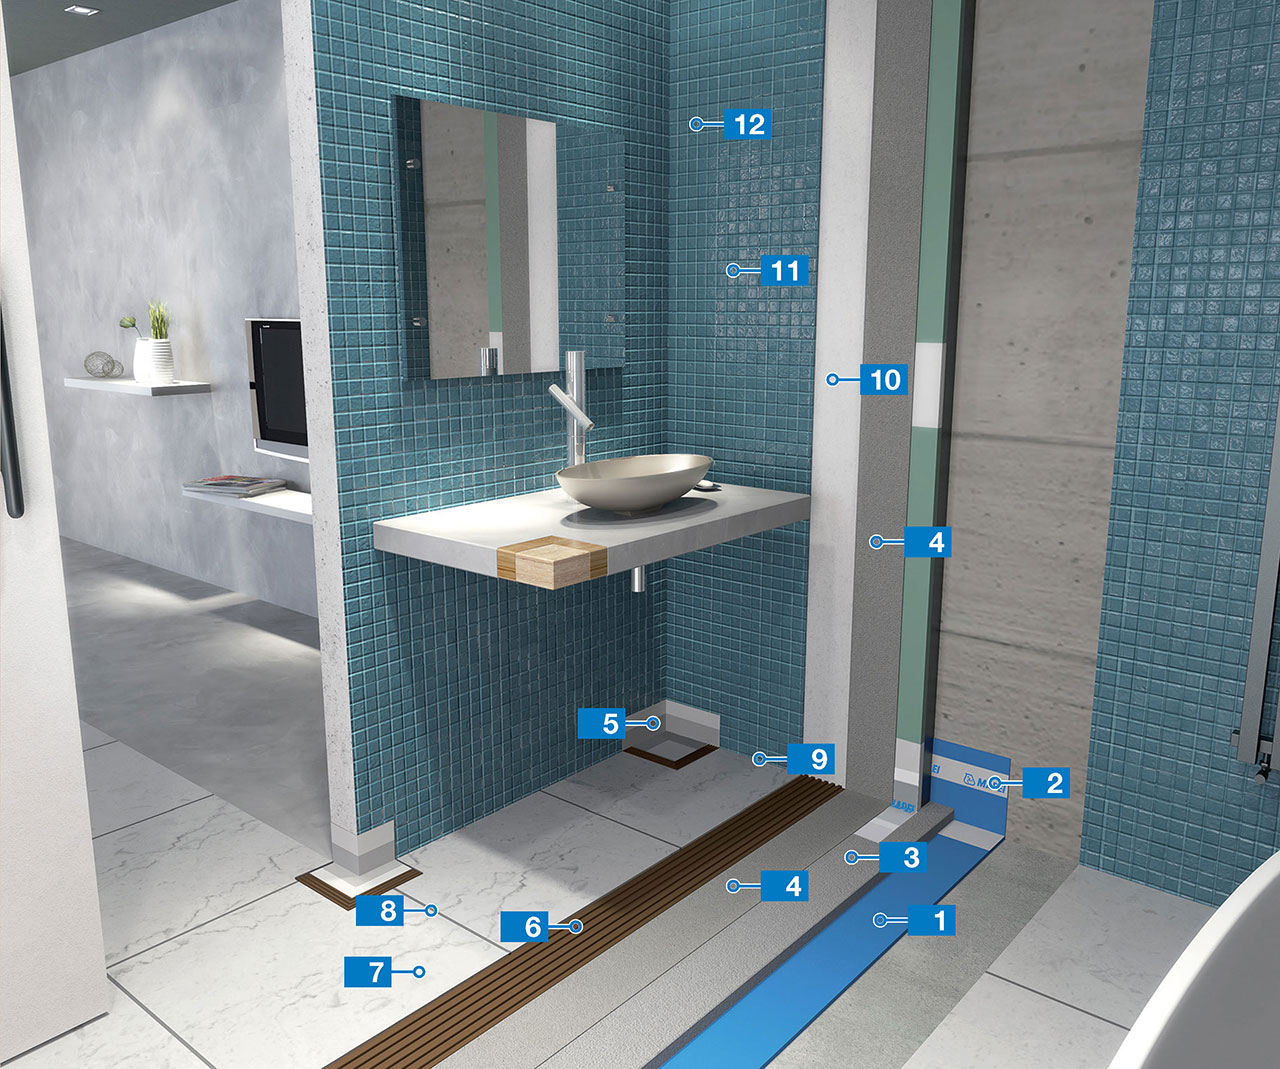 Charmant System Far Waterproofing And Soundproofing Ceramic And Glass Mosaic  Coverings In Bathrooms And Wet Environments